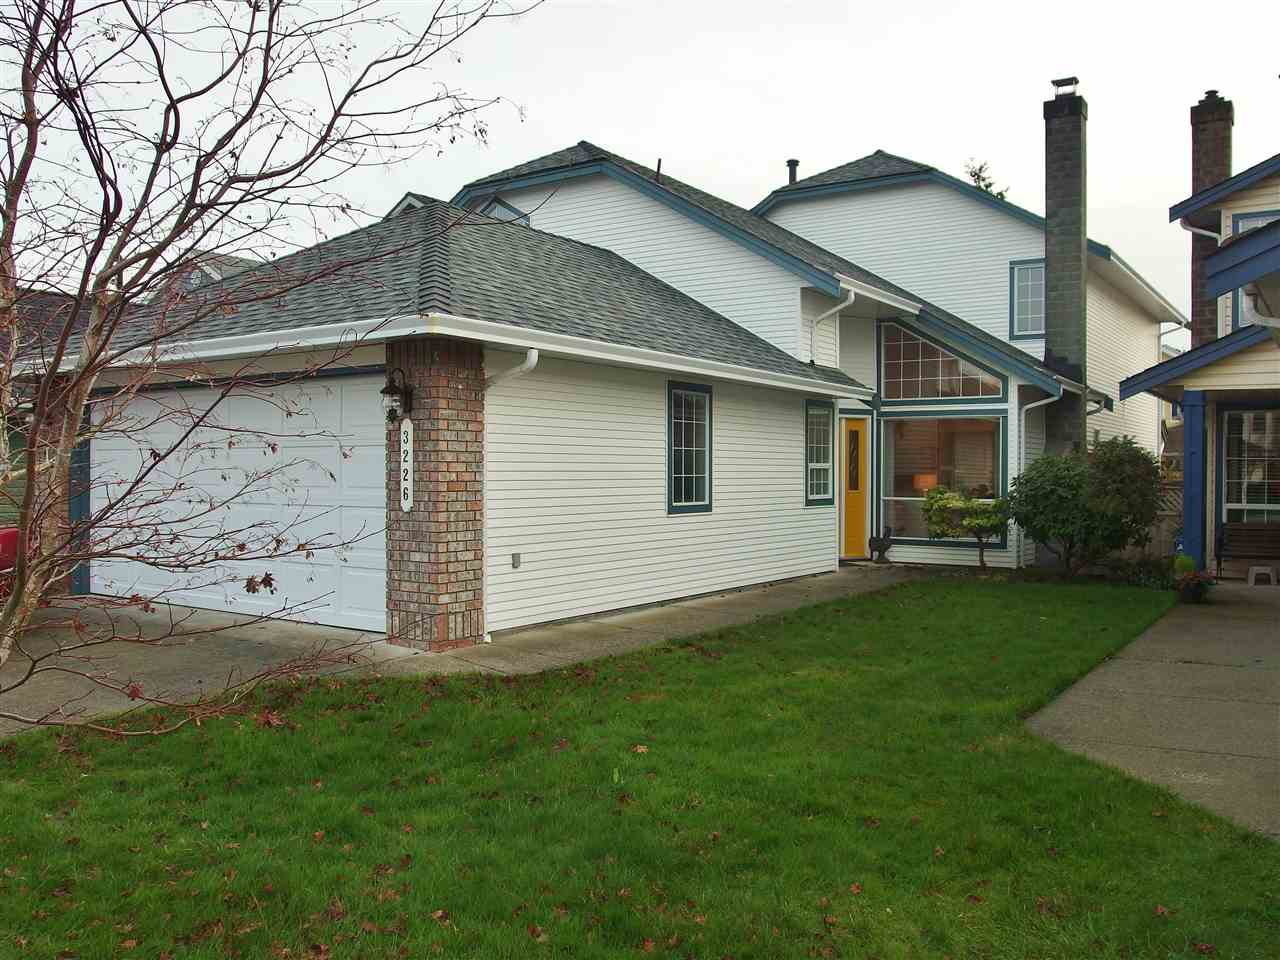 Main Photo: 3226 GEORGIA Street in Richmond: Steveston Village House for sale : MLS® # R2141023